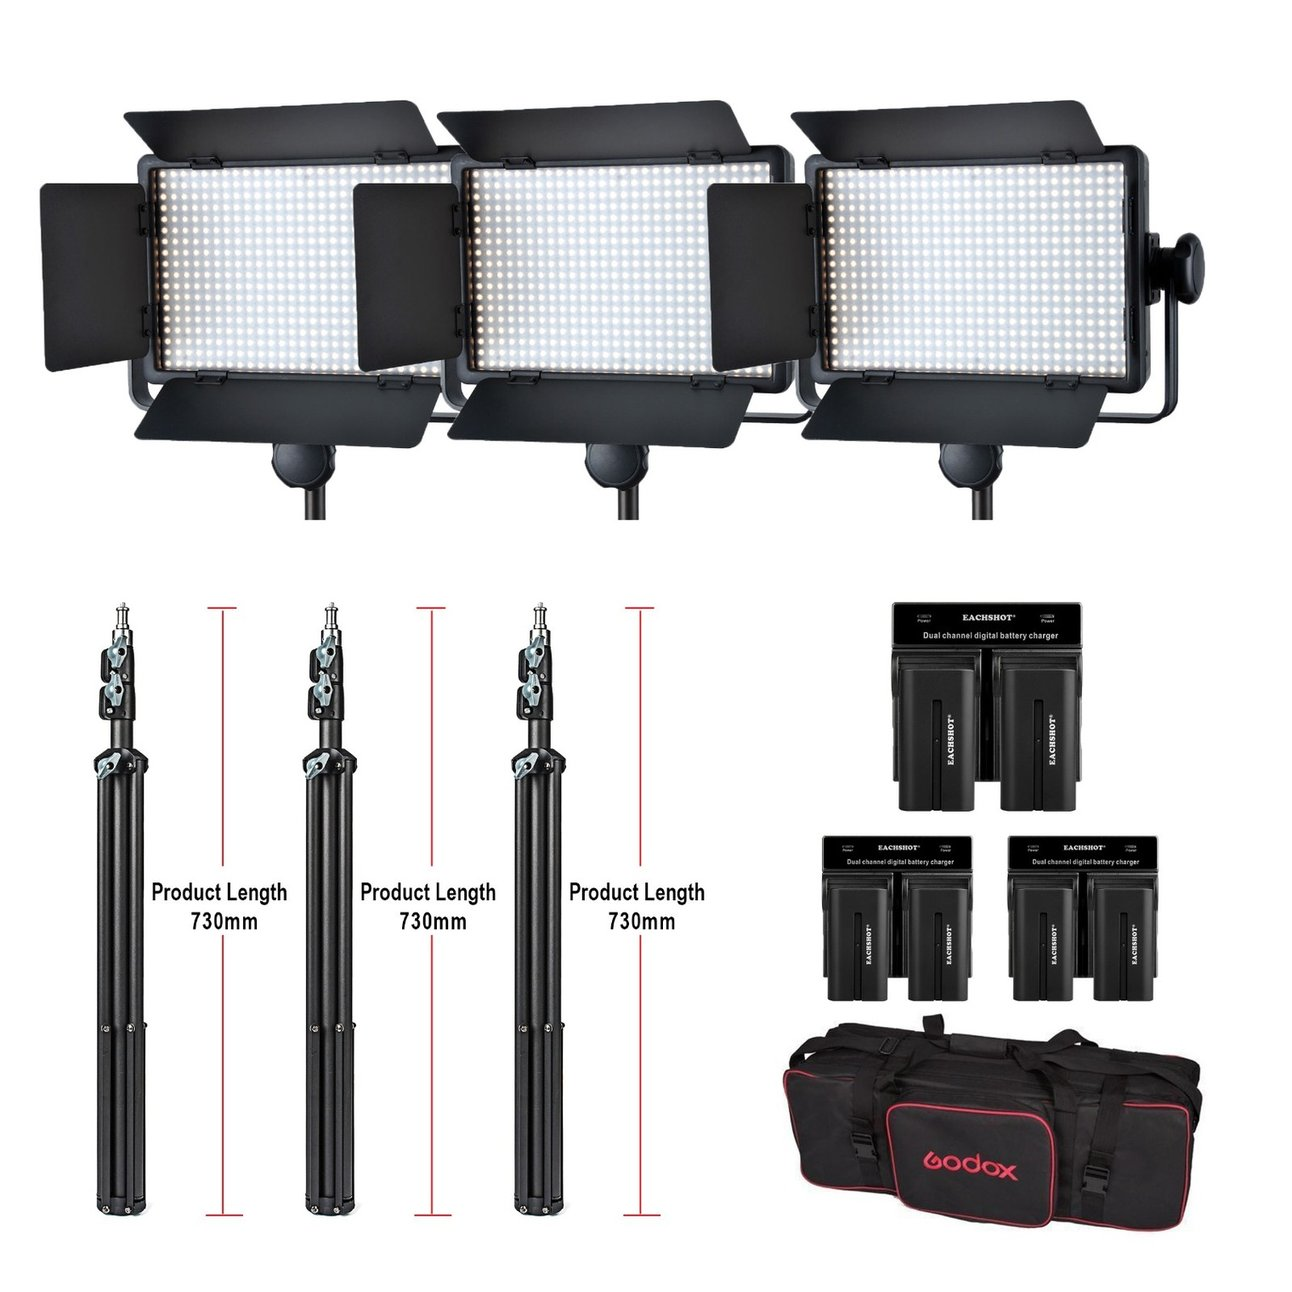 Godox 3x LED500W Kit 5600K 8700LUX LED Video Continuous Light Lamp Panel + stand + battery + battery charger W/ carrying Bag godox professional led video light